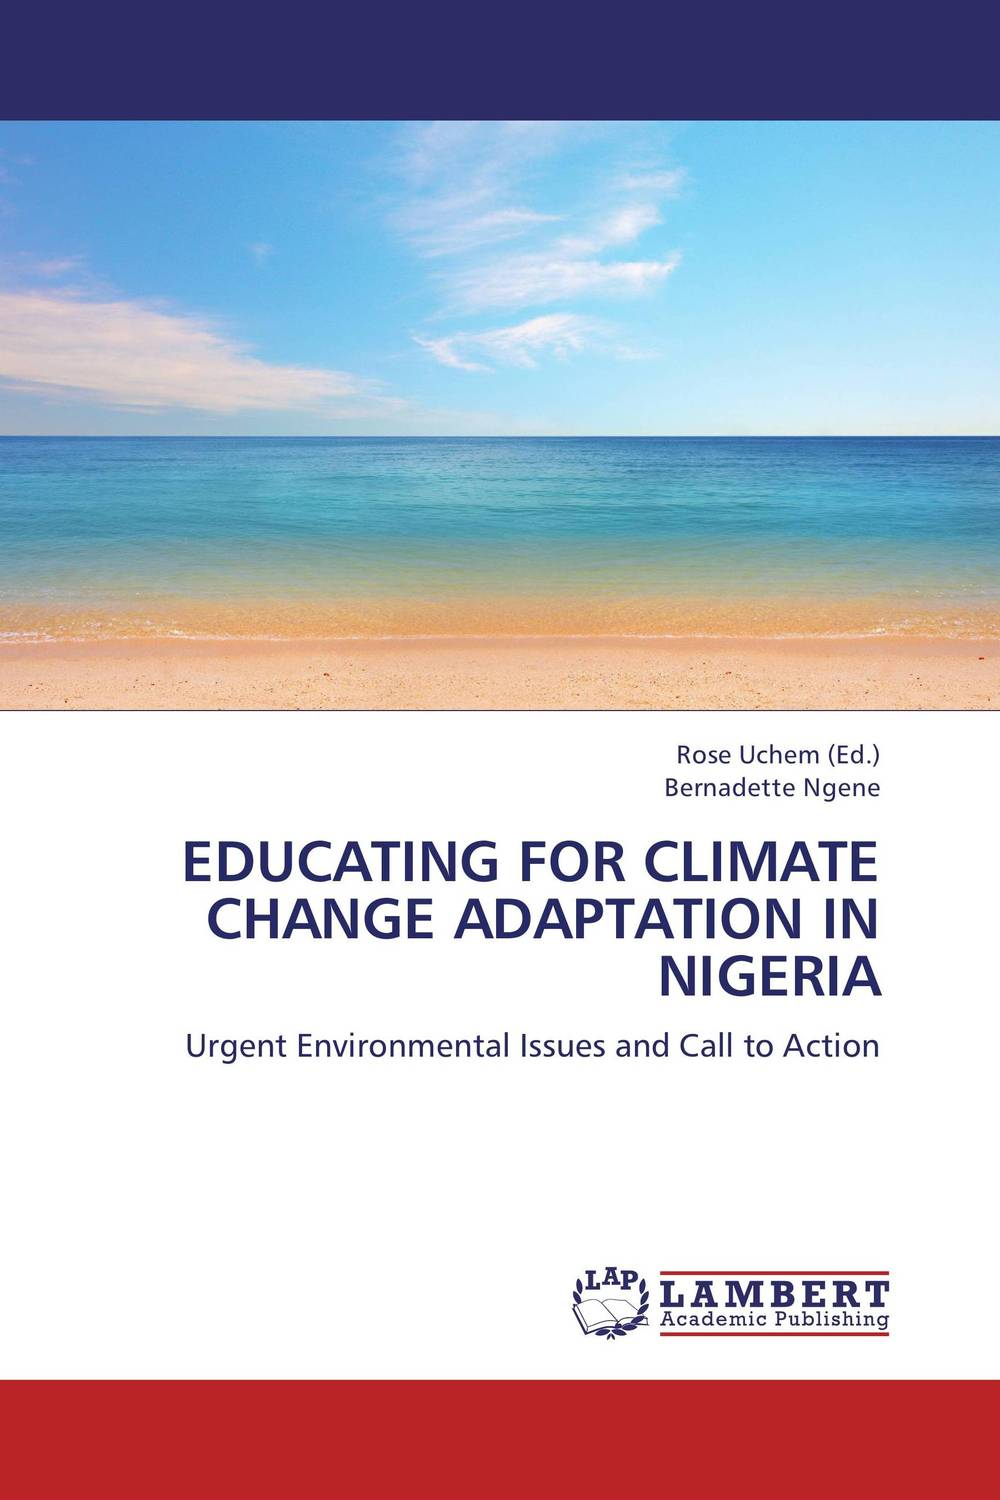 EDUCATING FOR CLIMATE CHANGE ADAPTATION IN NIGERIA imimole benedict exchange rate regimes and the demand for imports in nigeria 1970 2008